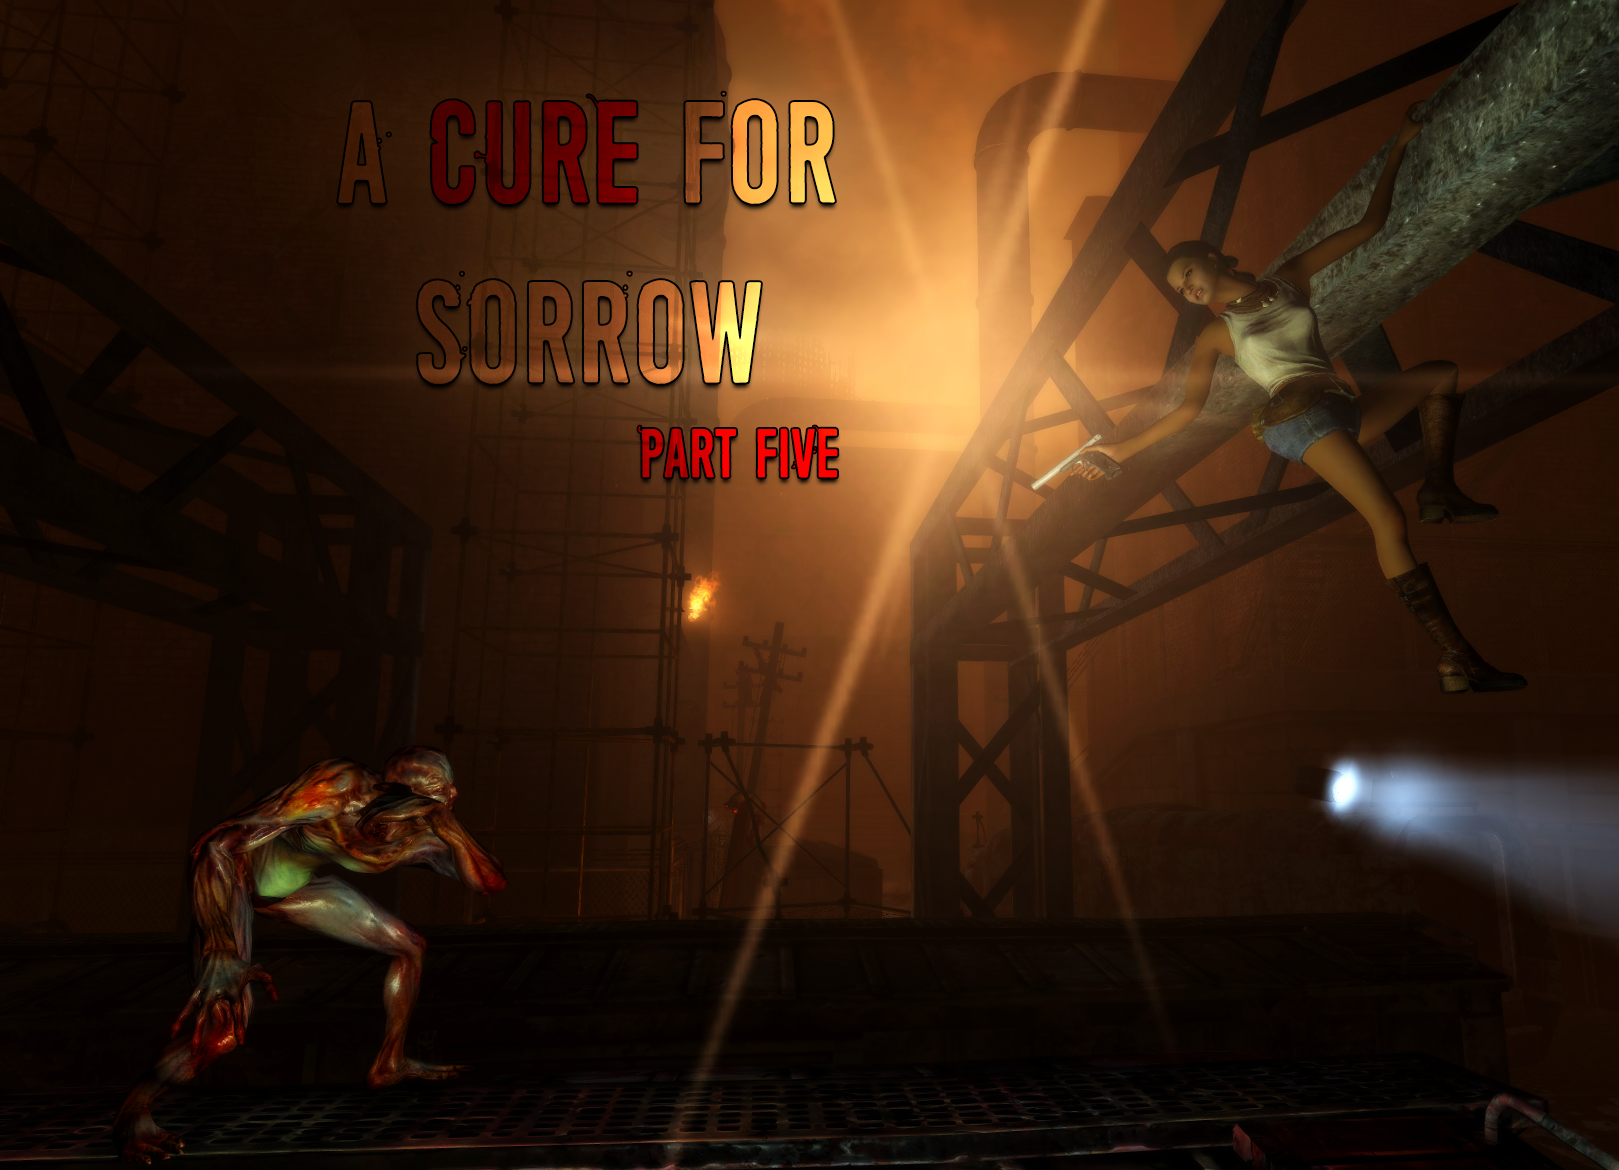 A Cure for Sorrow - Part Five